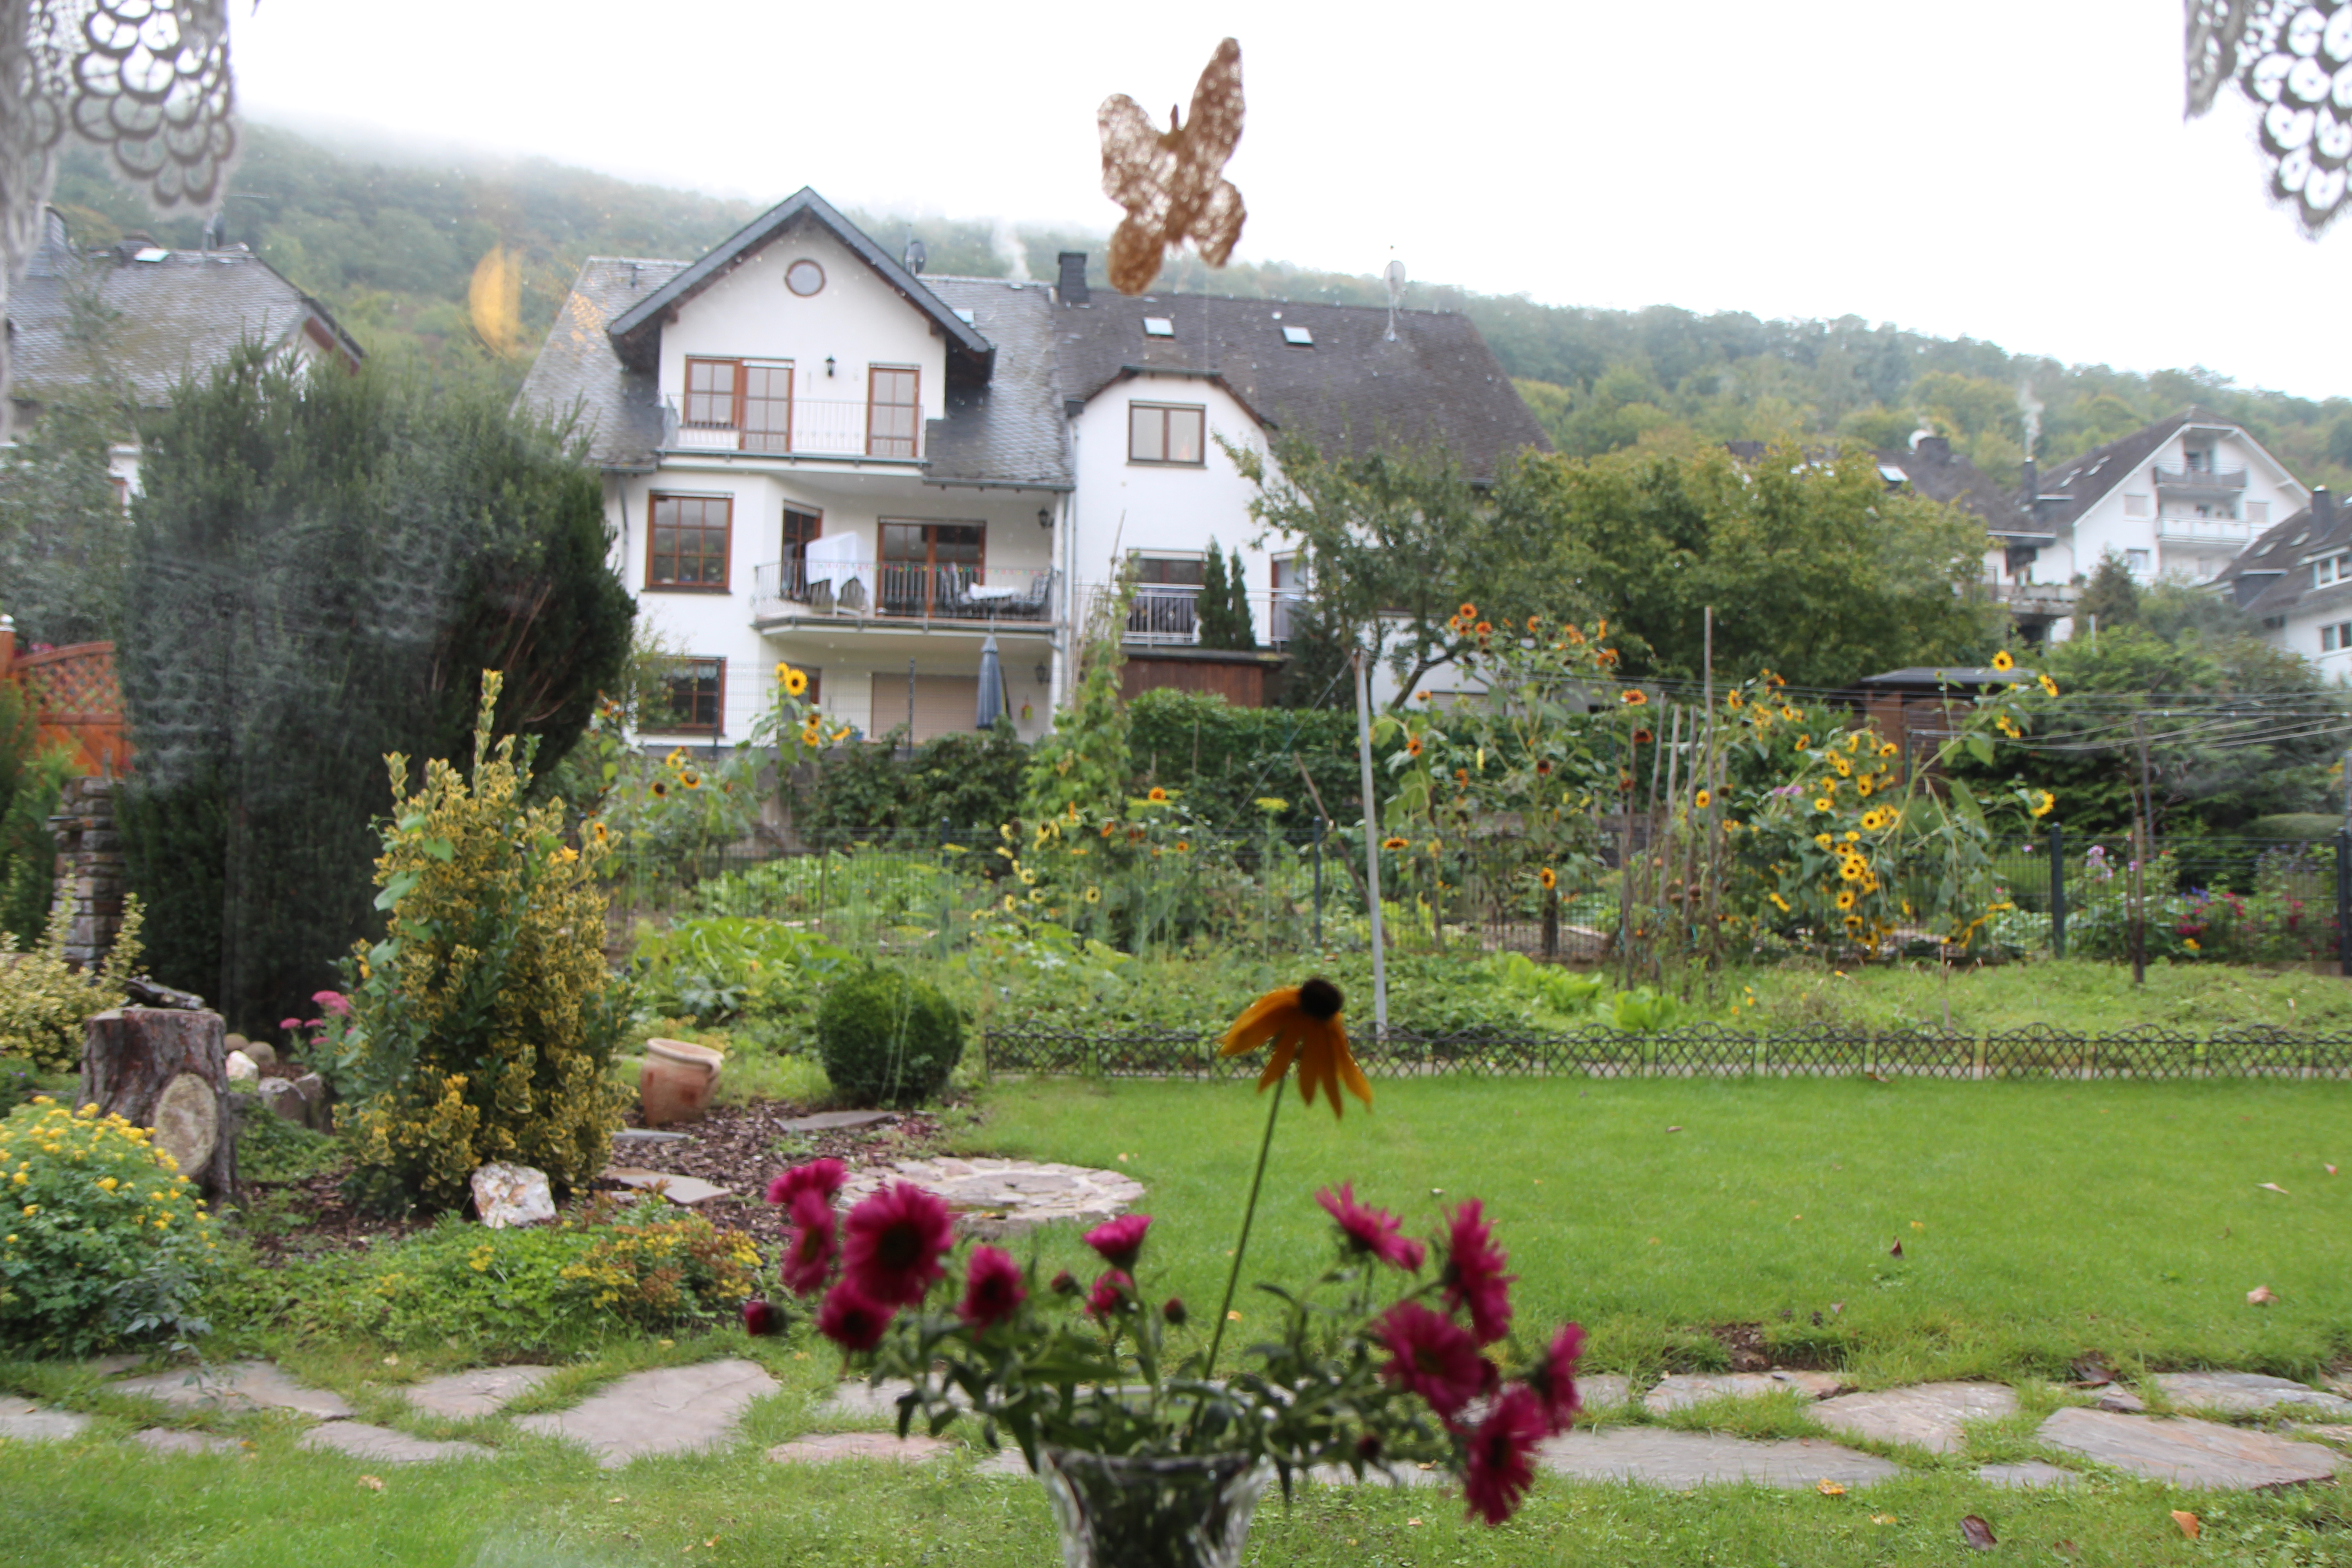 oberfell nestled beside the mosel river wake up and smell the joy